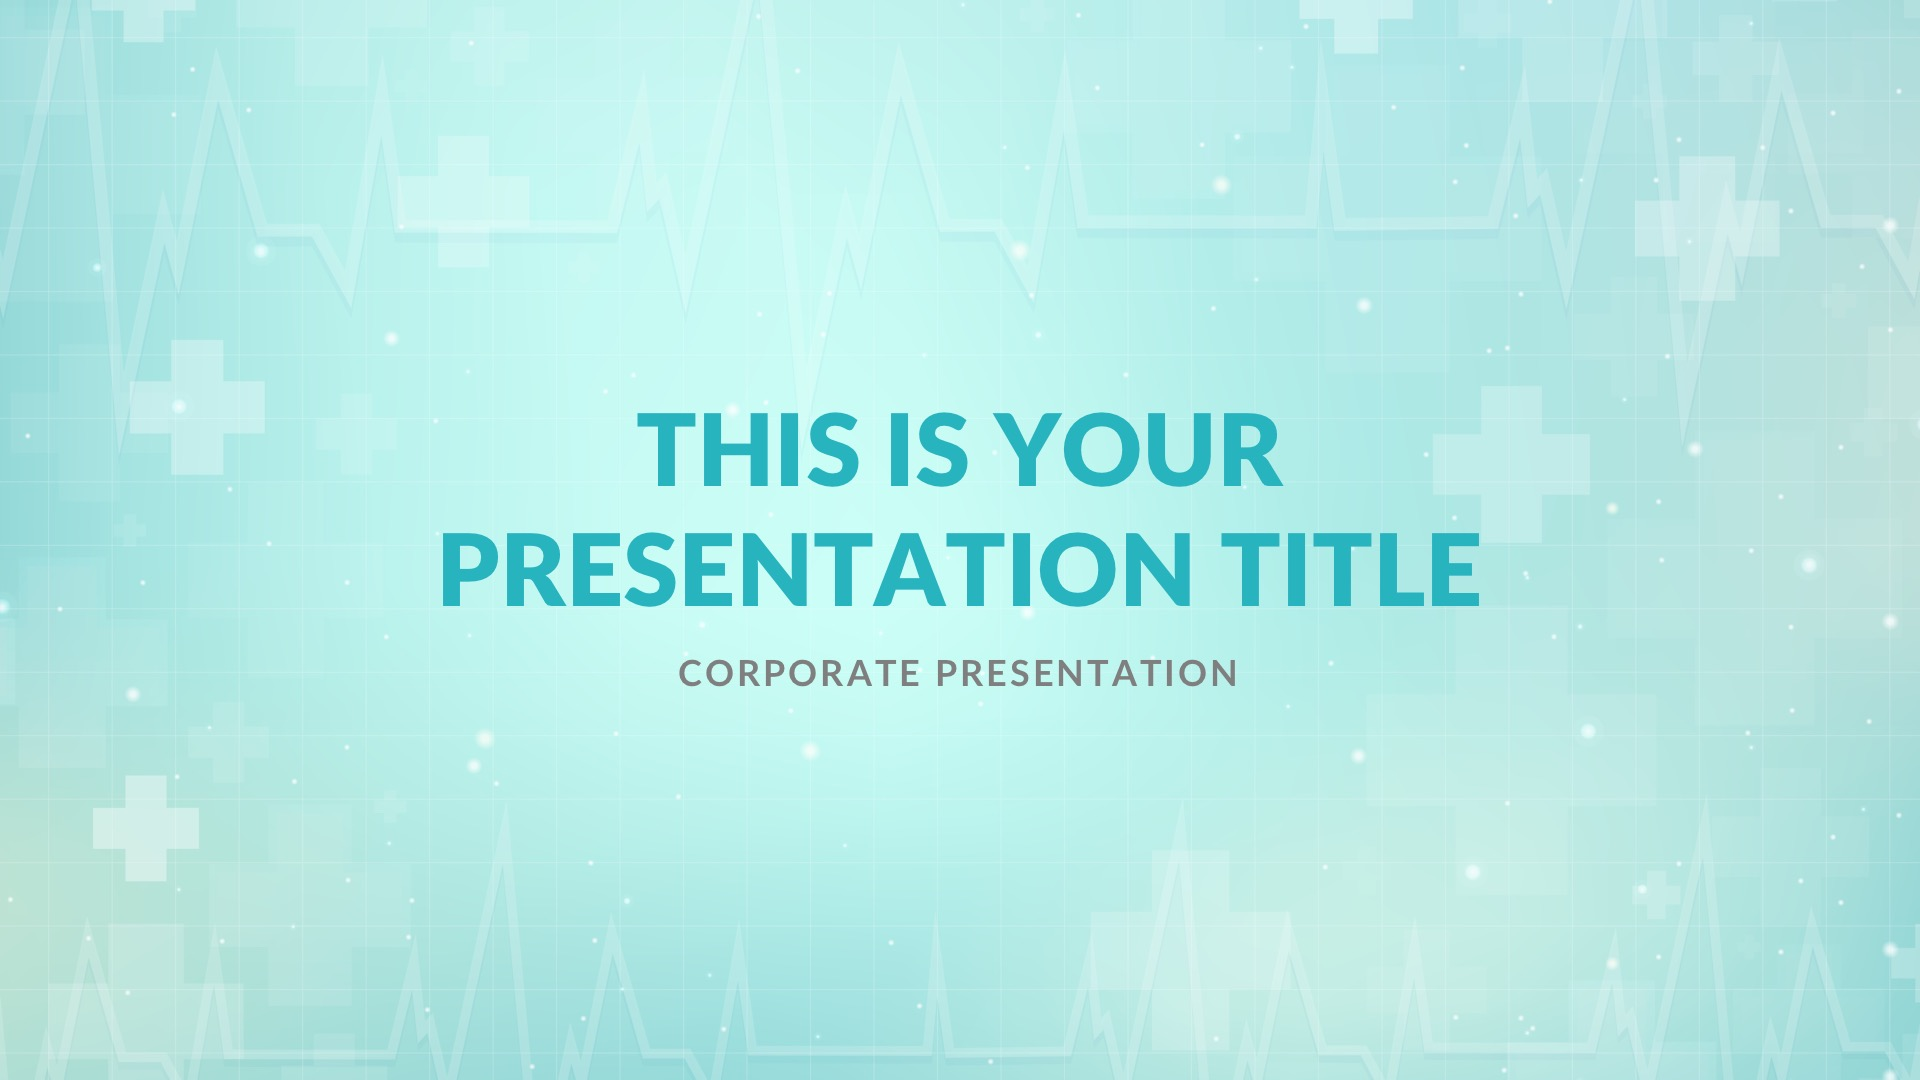 Hospital Medical PowerPoint Template, Google Slides, Keynote